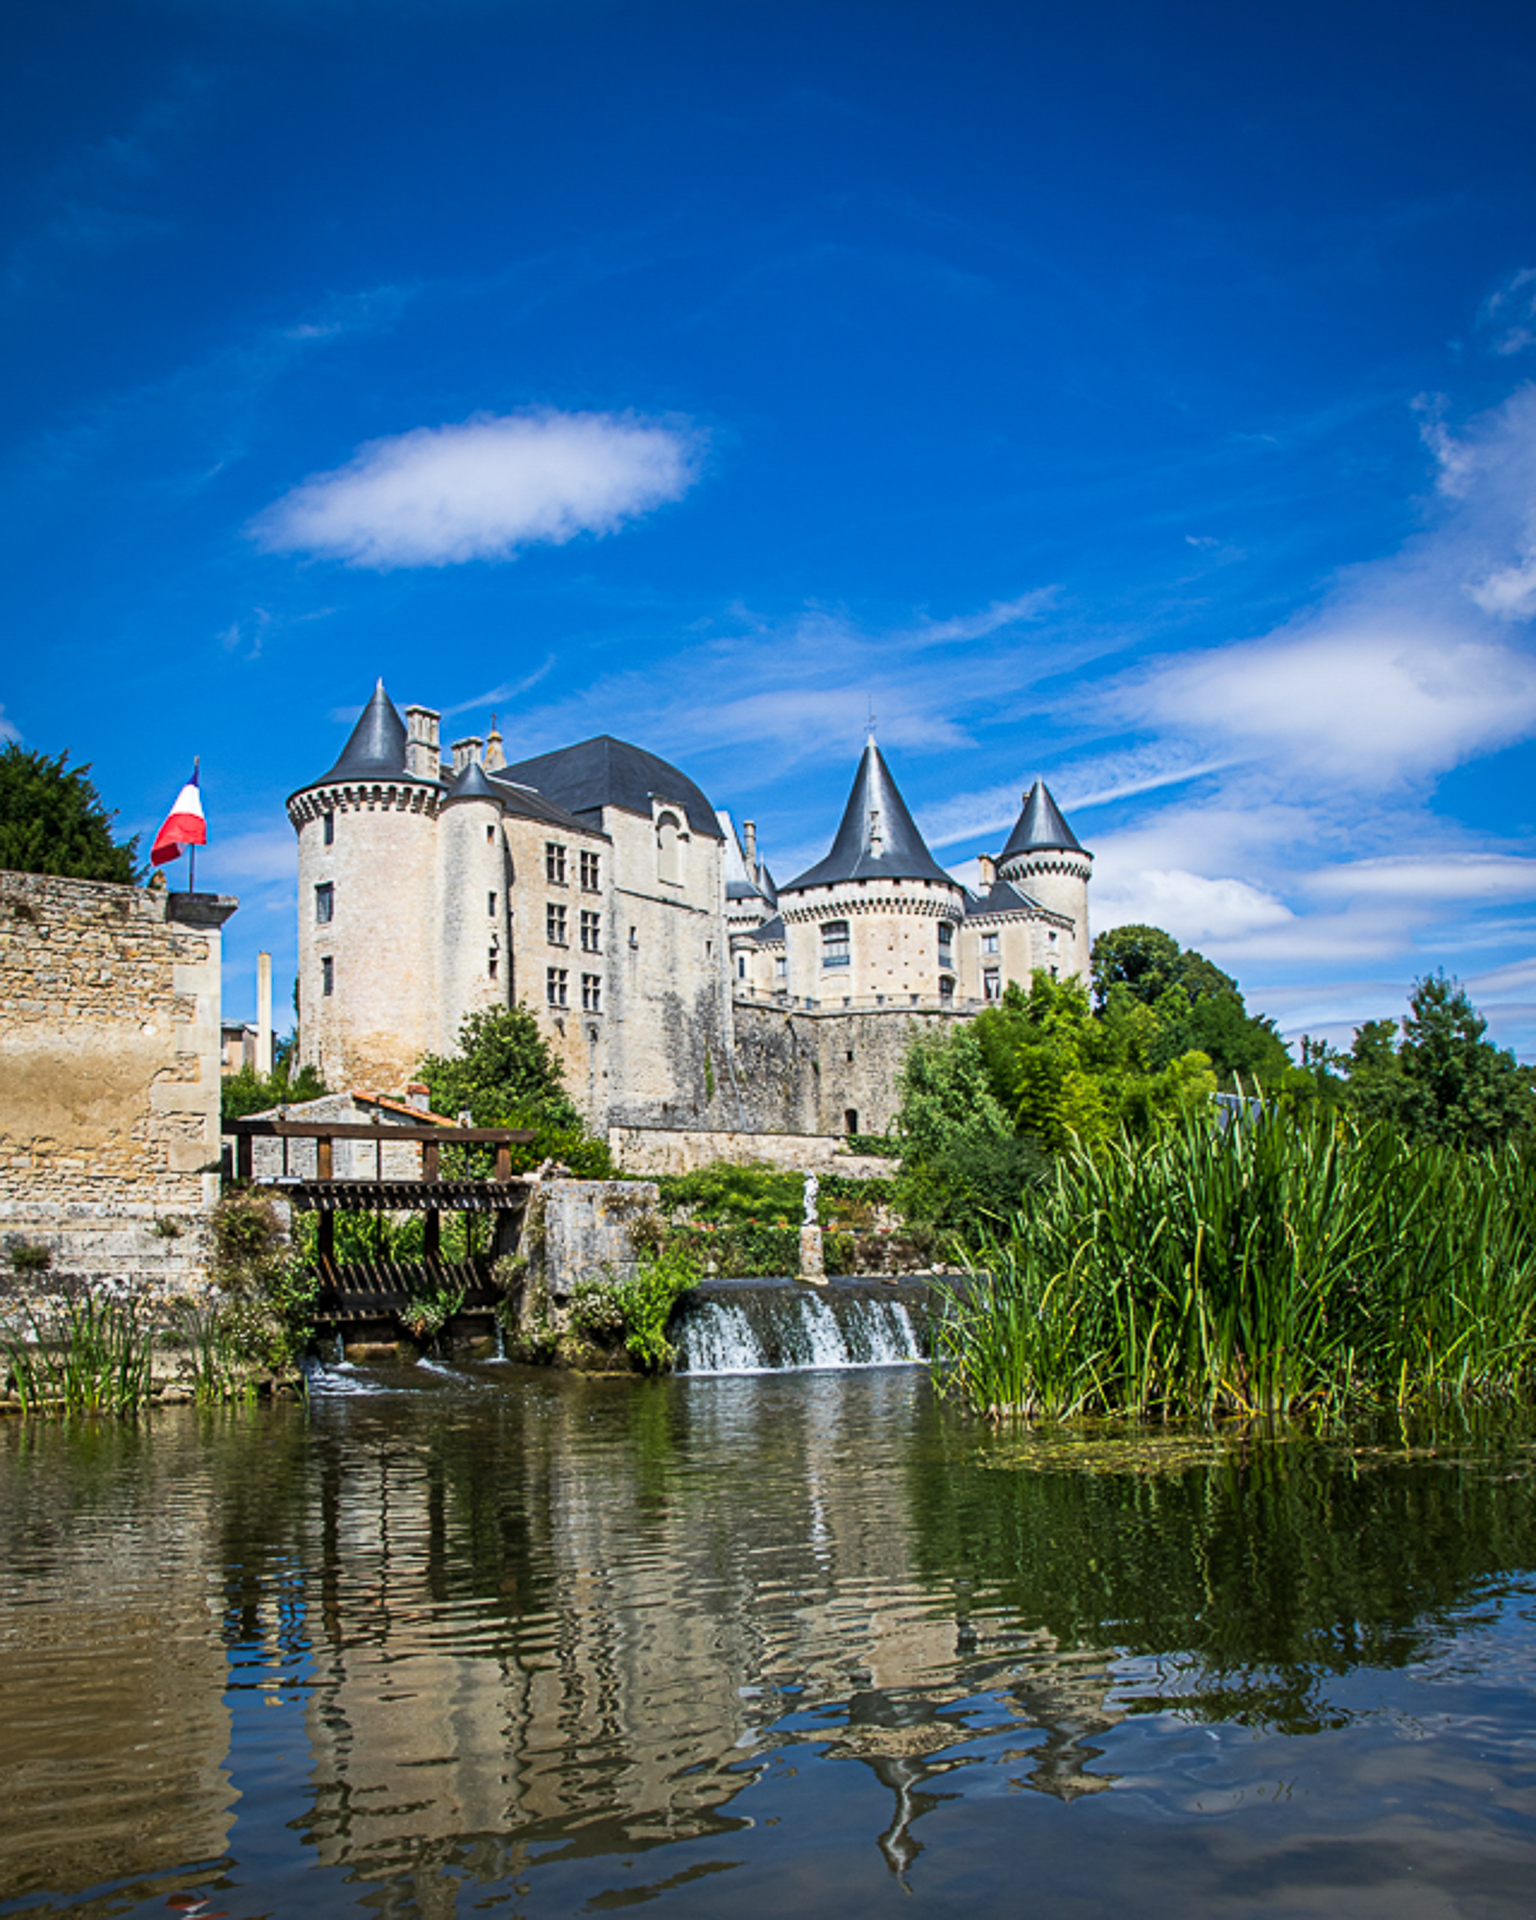 Taken from within the river a view of the magnificent buildings with their dark grey slate roofs of the Chateau at Verteuil-sur-Charante, France. Set against a beautiful blue sky, spattered with stratocumulus clouds, they overlook the Charente River. The French Tricolour flies beside the weir.